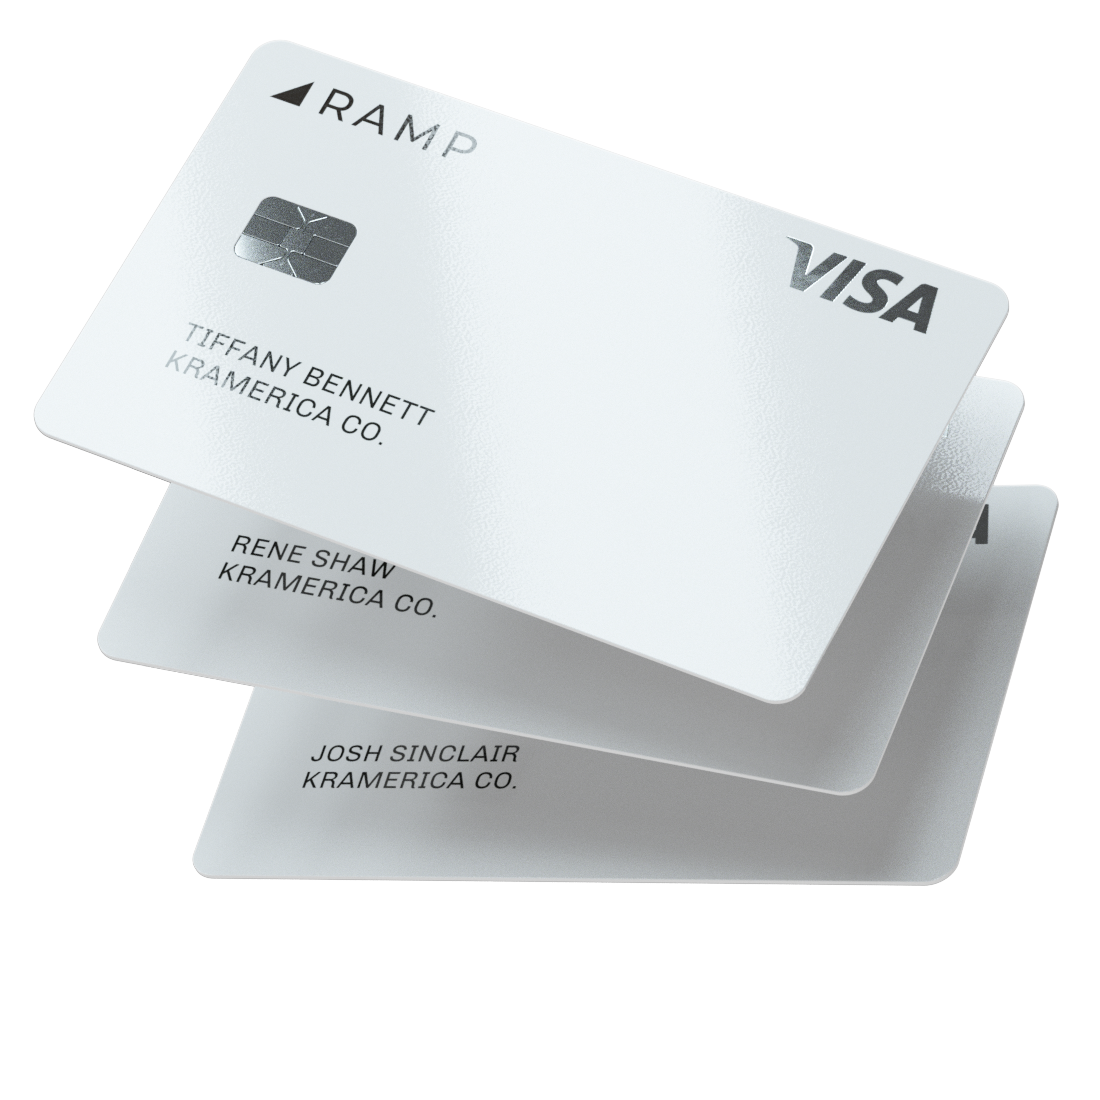 Ramp is a corporate card focused on helping you spend less